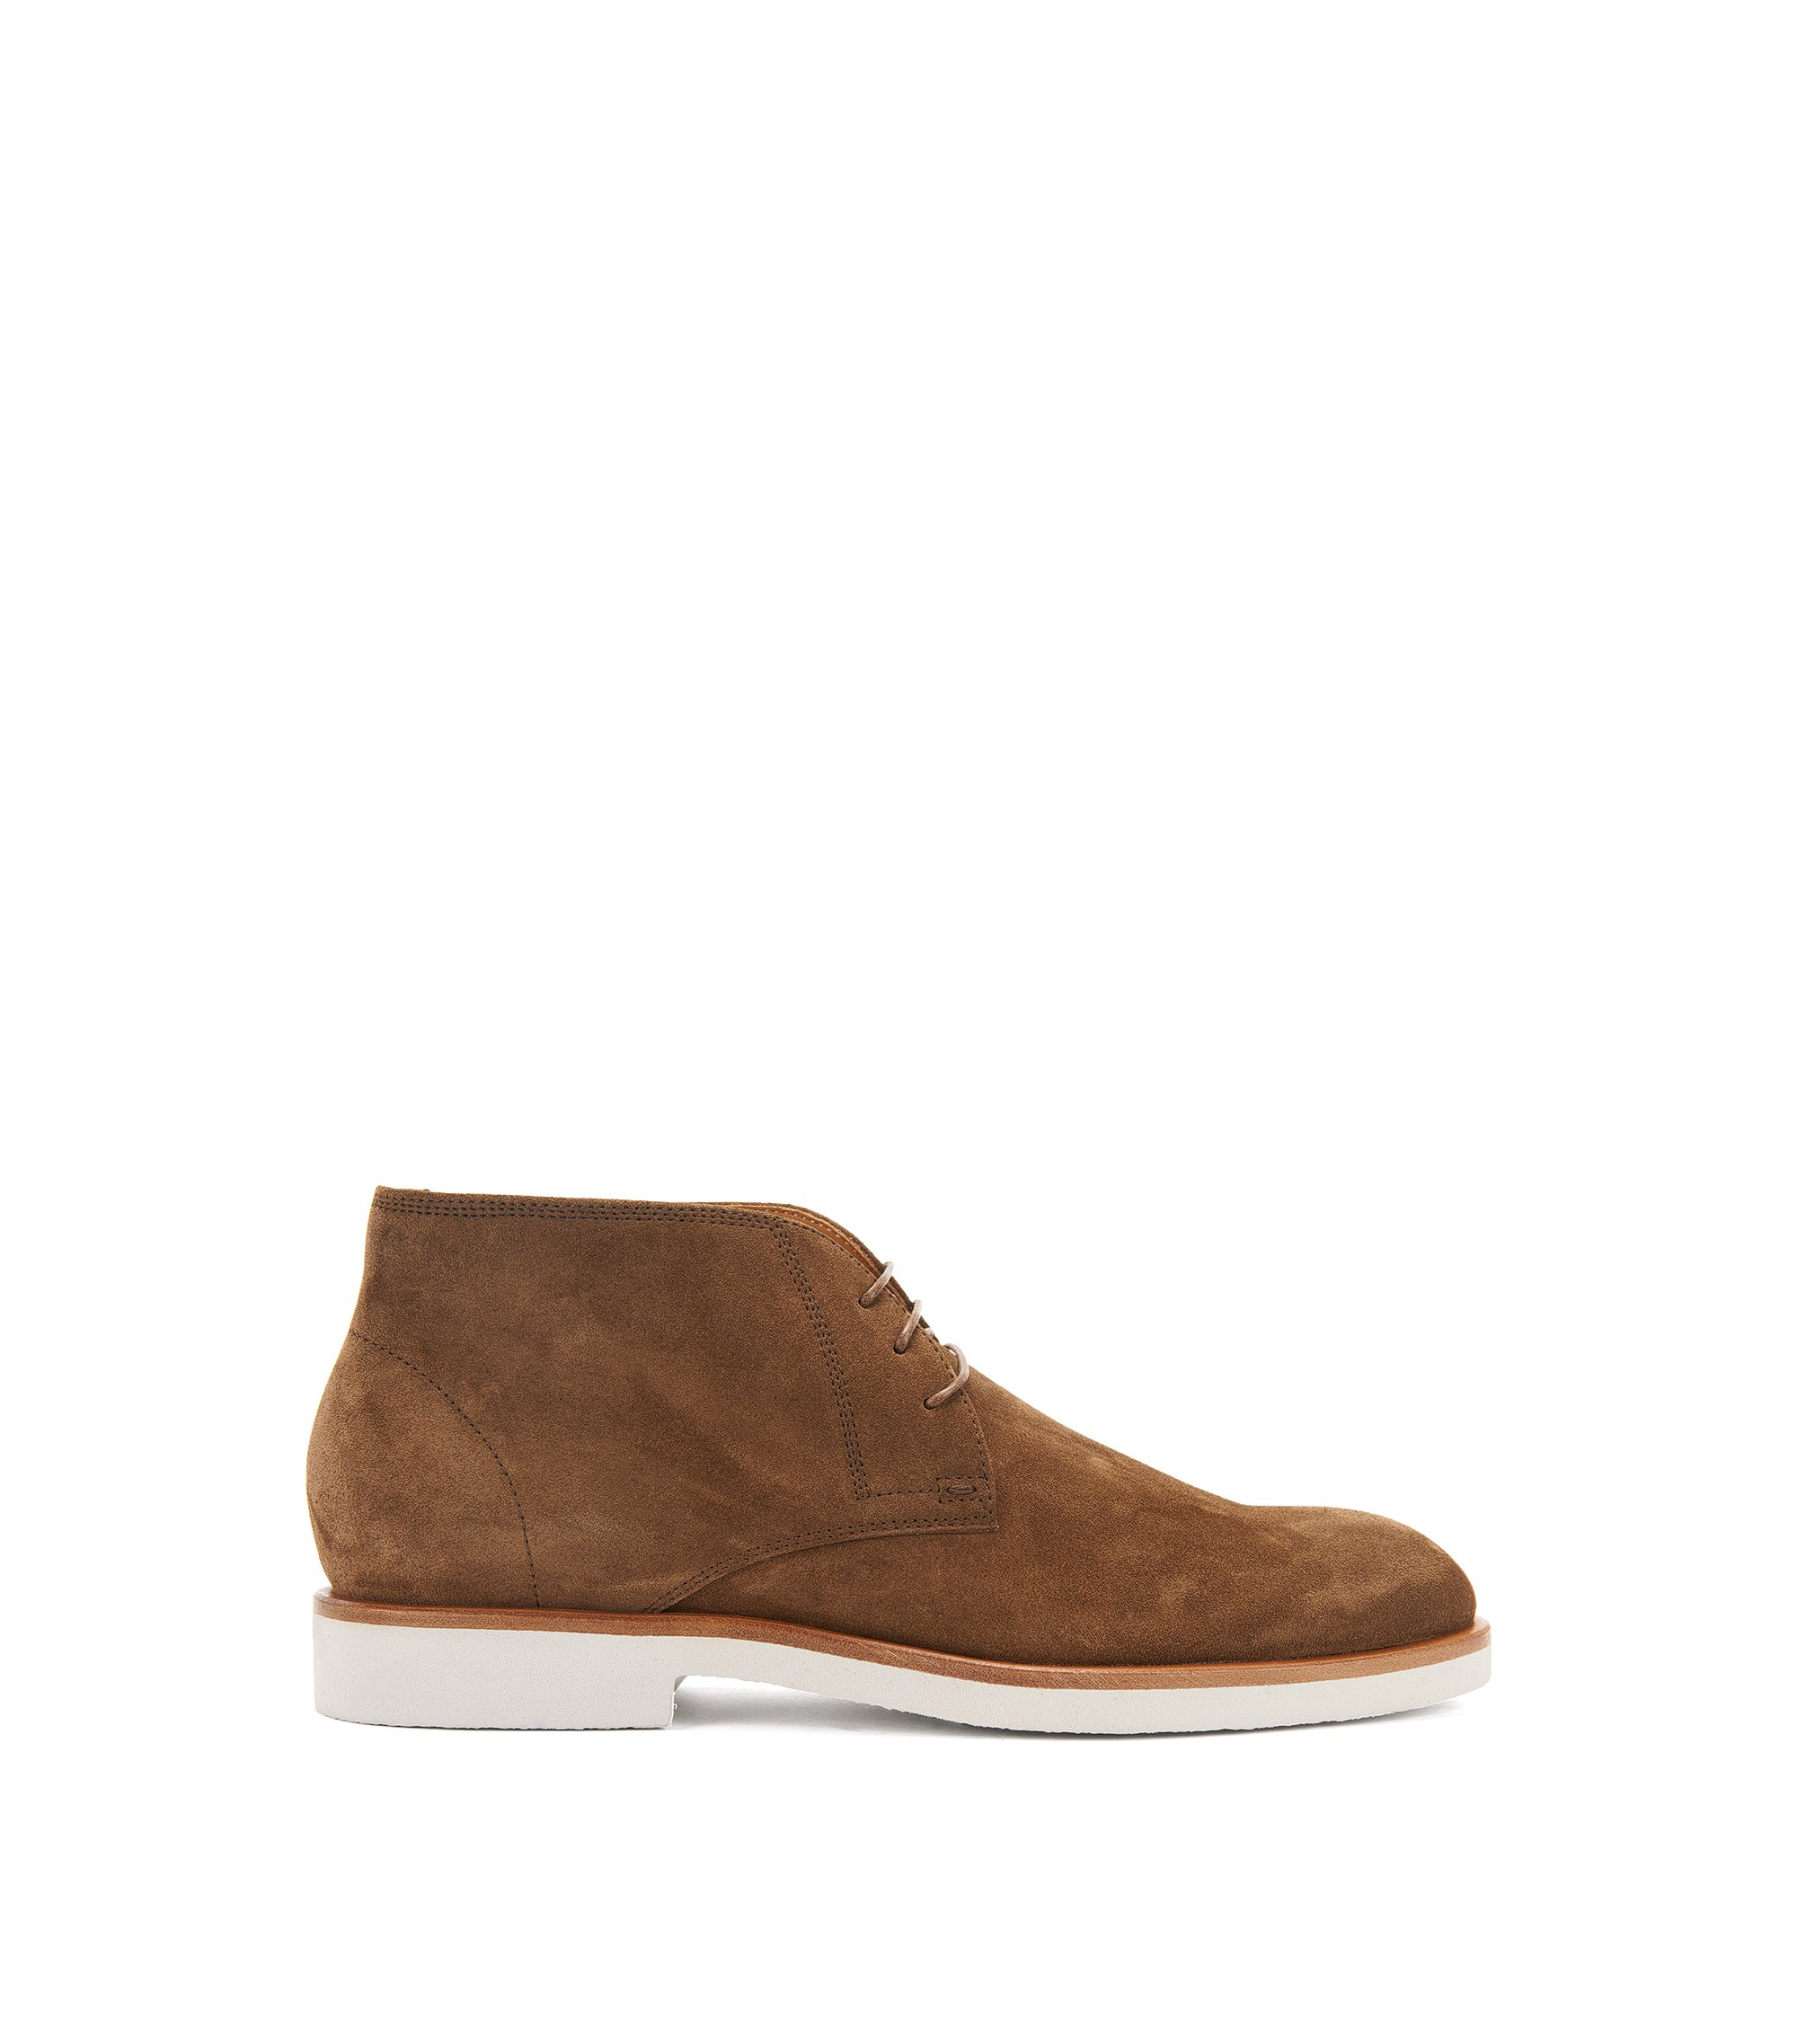 Suede desert boots on a crêpe sole, Khaki